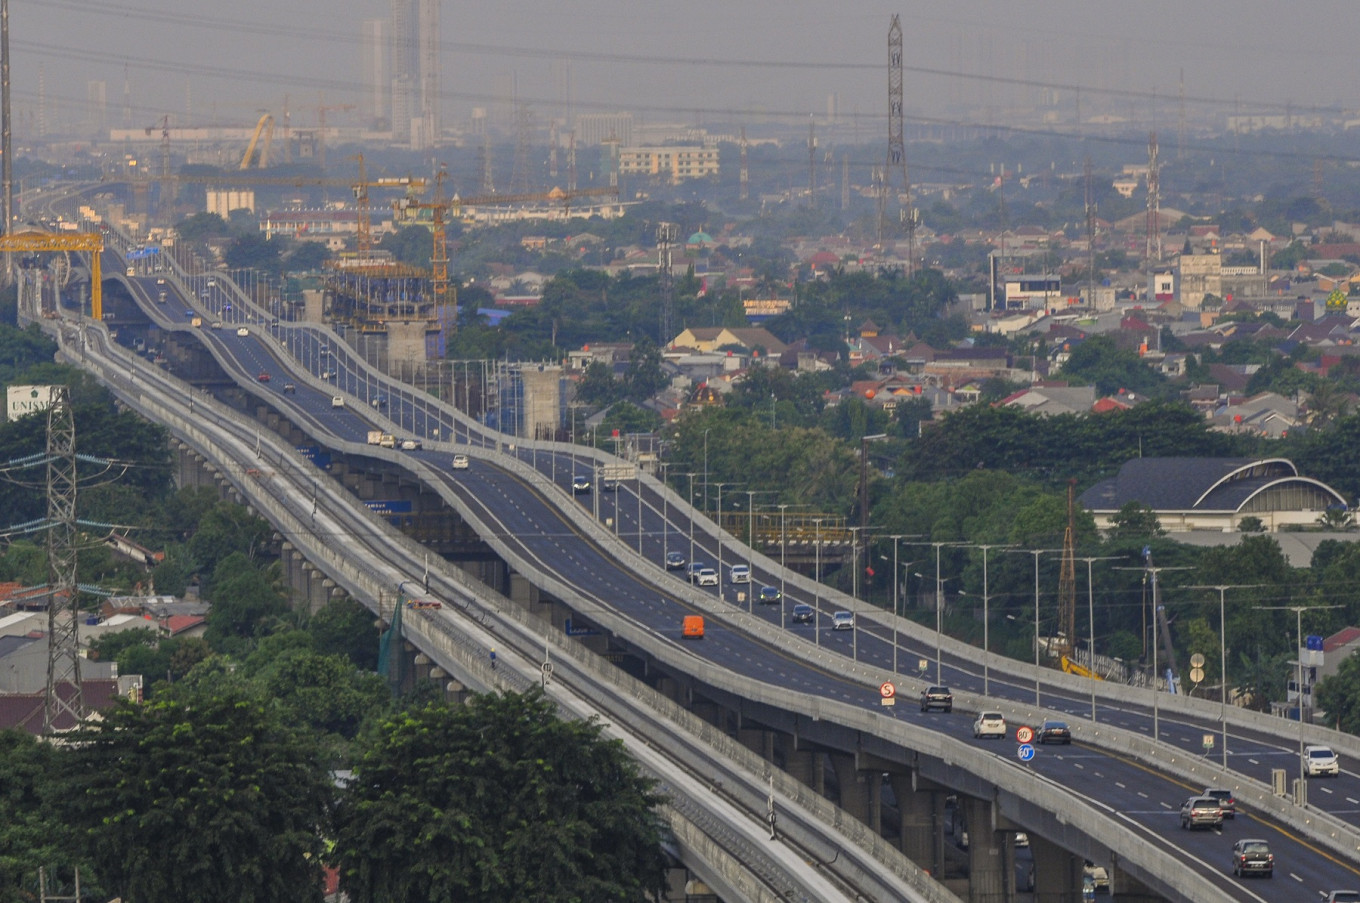 Waskita secures BBB+ rating for bonds, expects Rp 35t project revenue in 2020